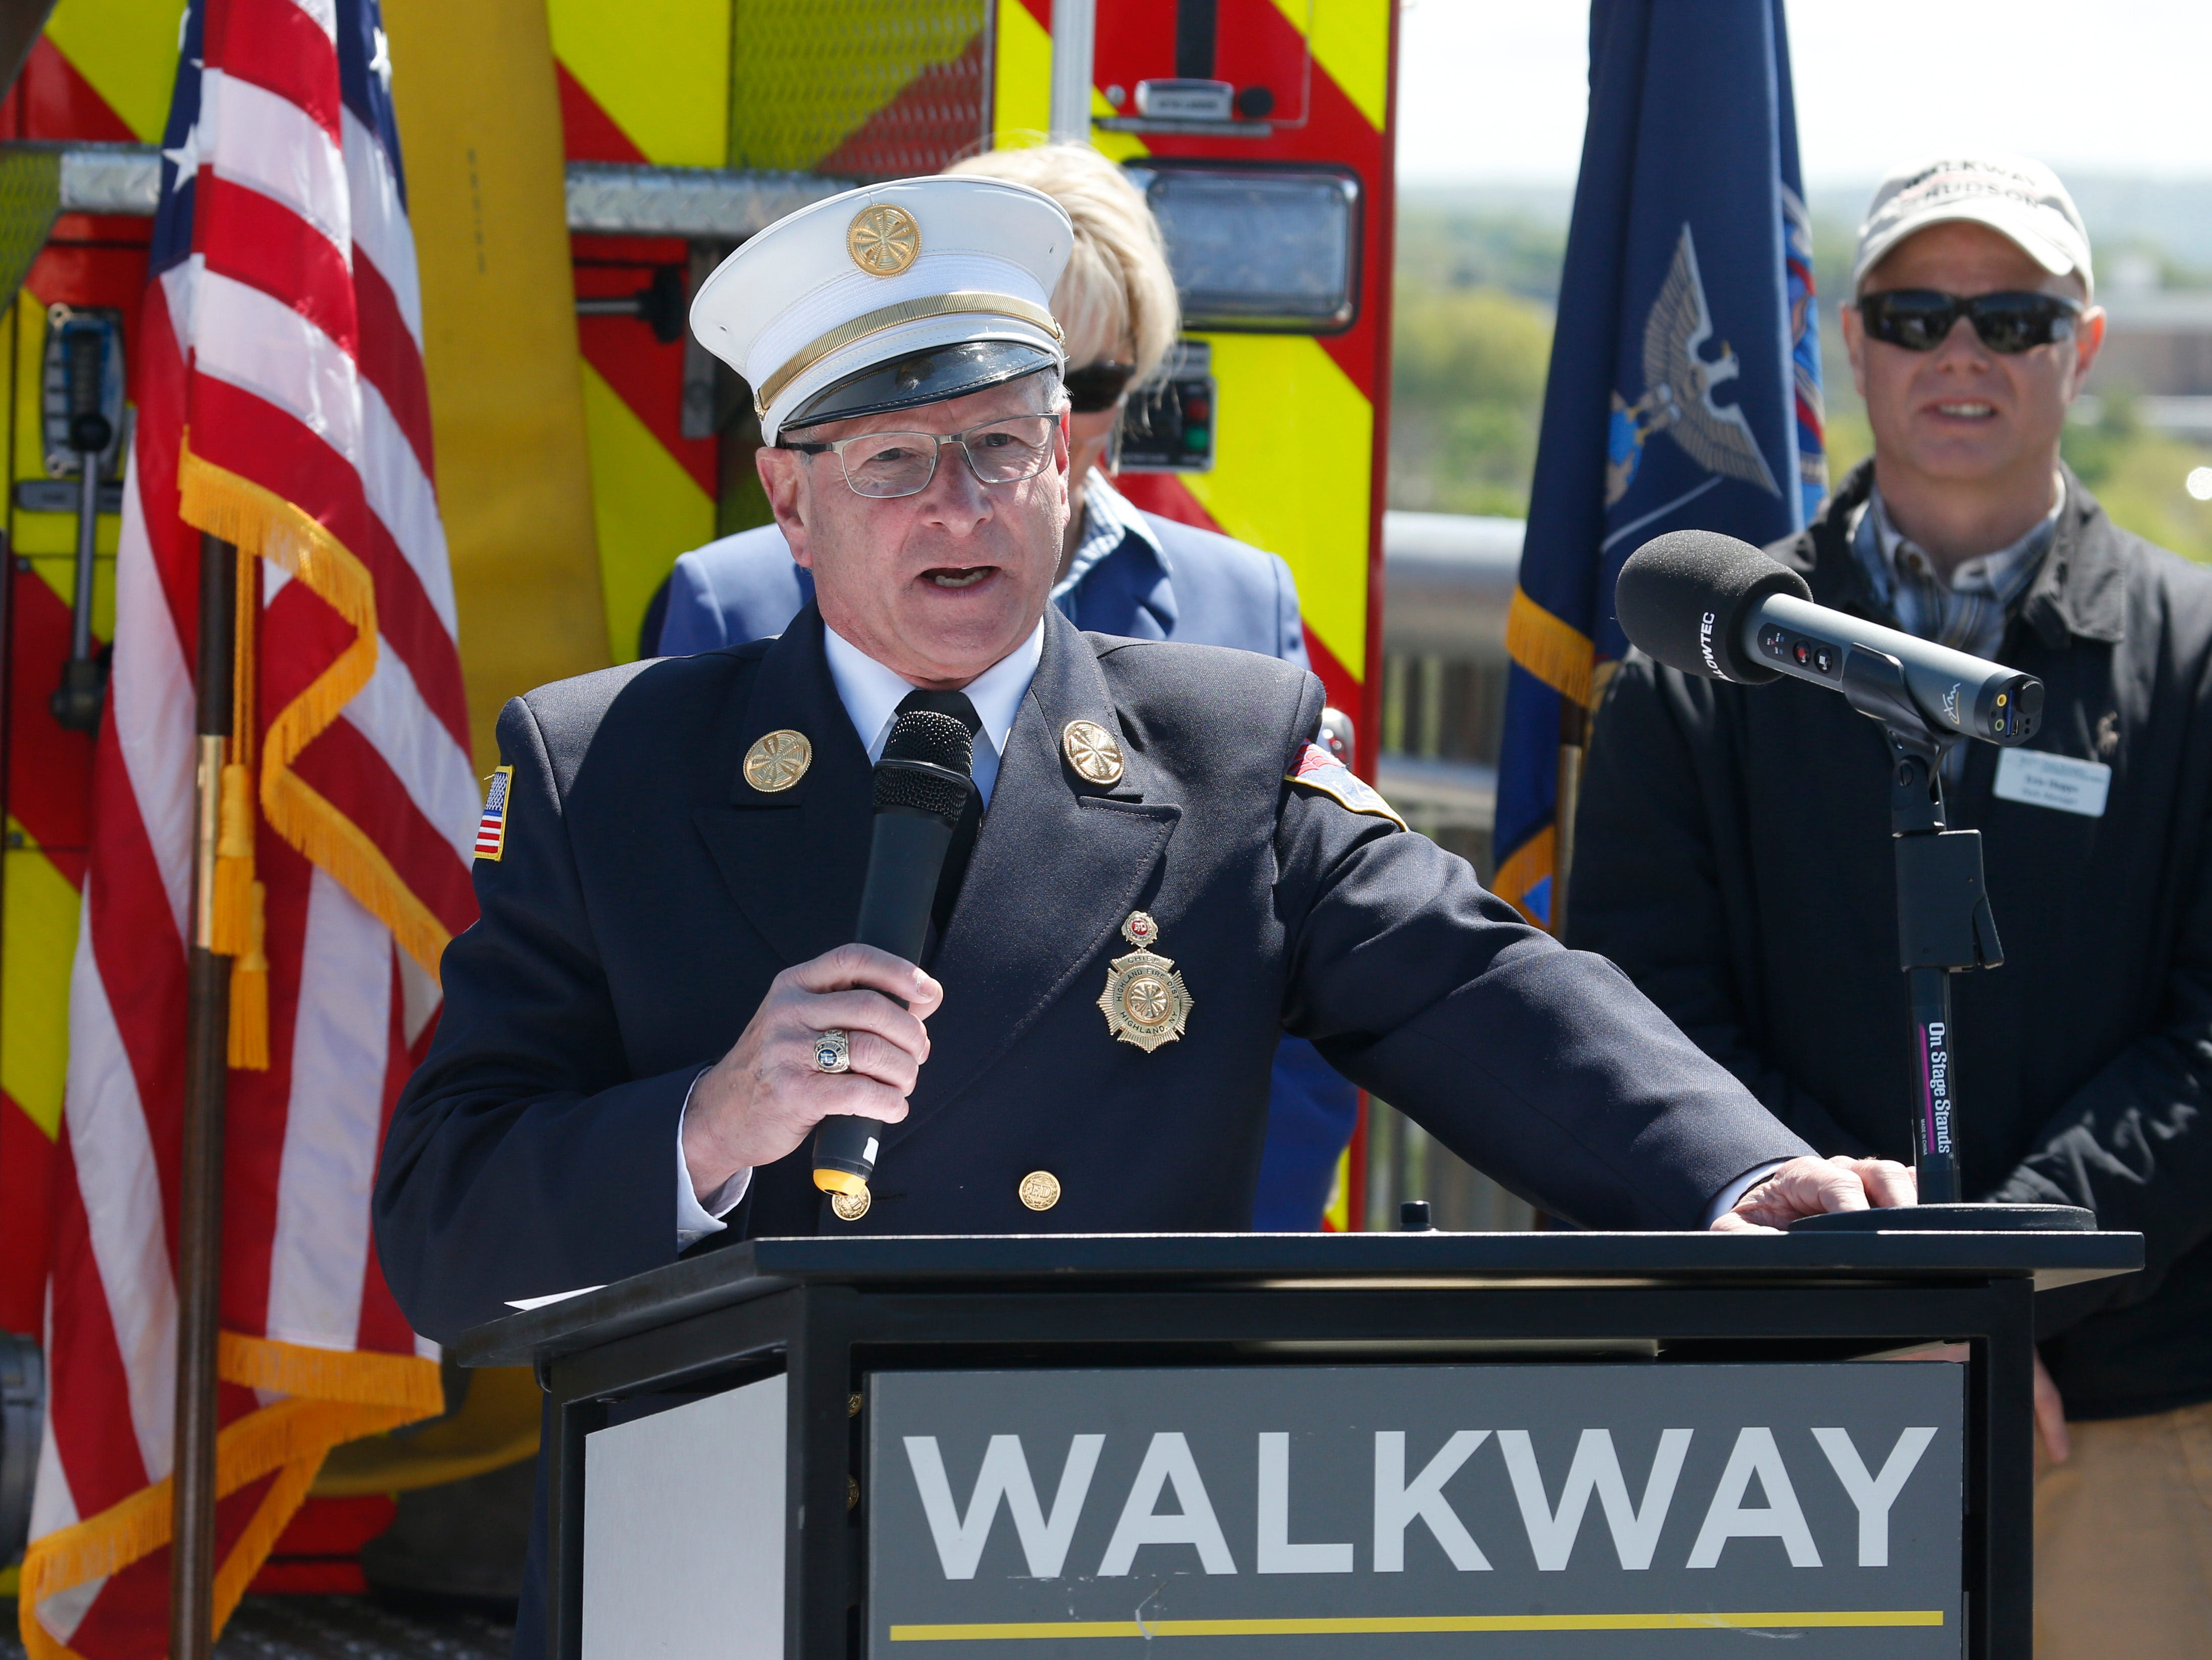 Highland fire chief Peter Miller speaks during Wednesday's commemoration of 45th anniversary of the fire that engulfed the railroad bridge on May 8, 2019. Miller was one of the firefighters who responded to the fire in 1974.